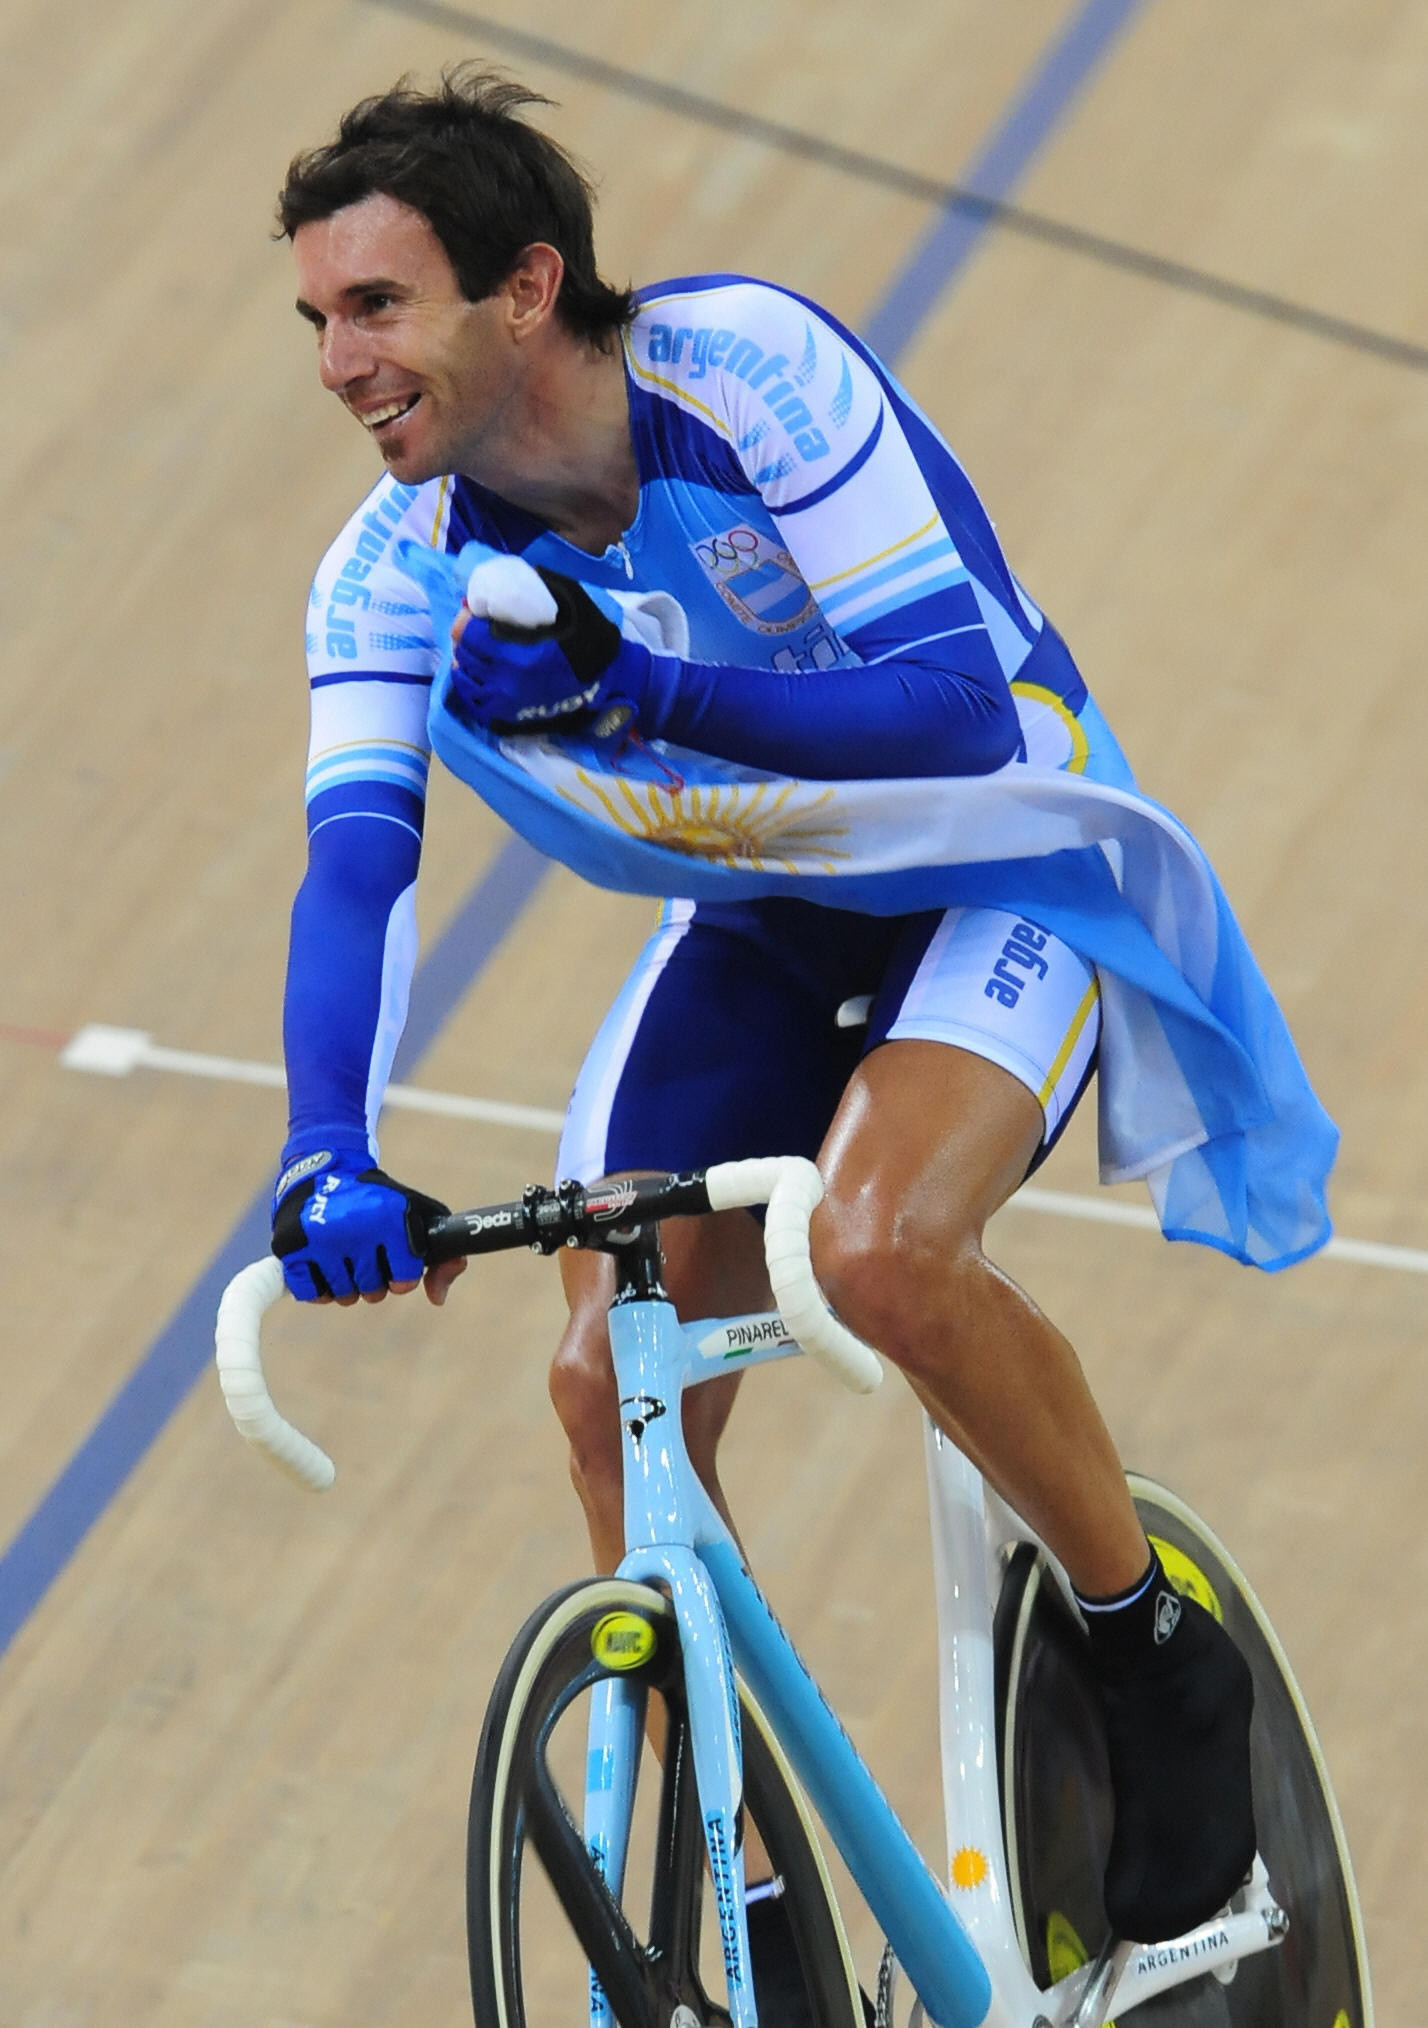 Beijing 2008 madison champion Walter Pérez of Argentina is running to be elected to the Panam Sports Athlete Commission ©Getty Images